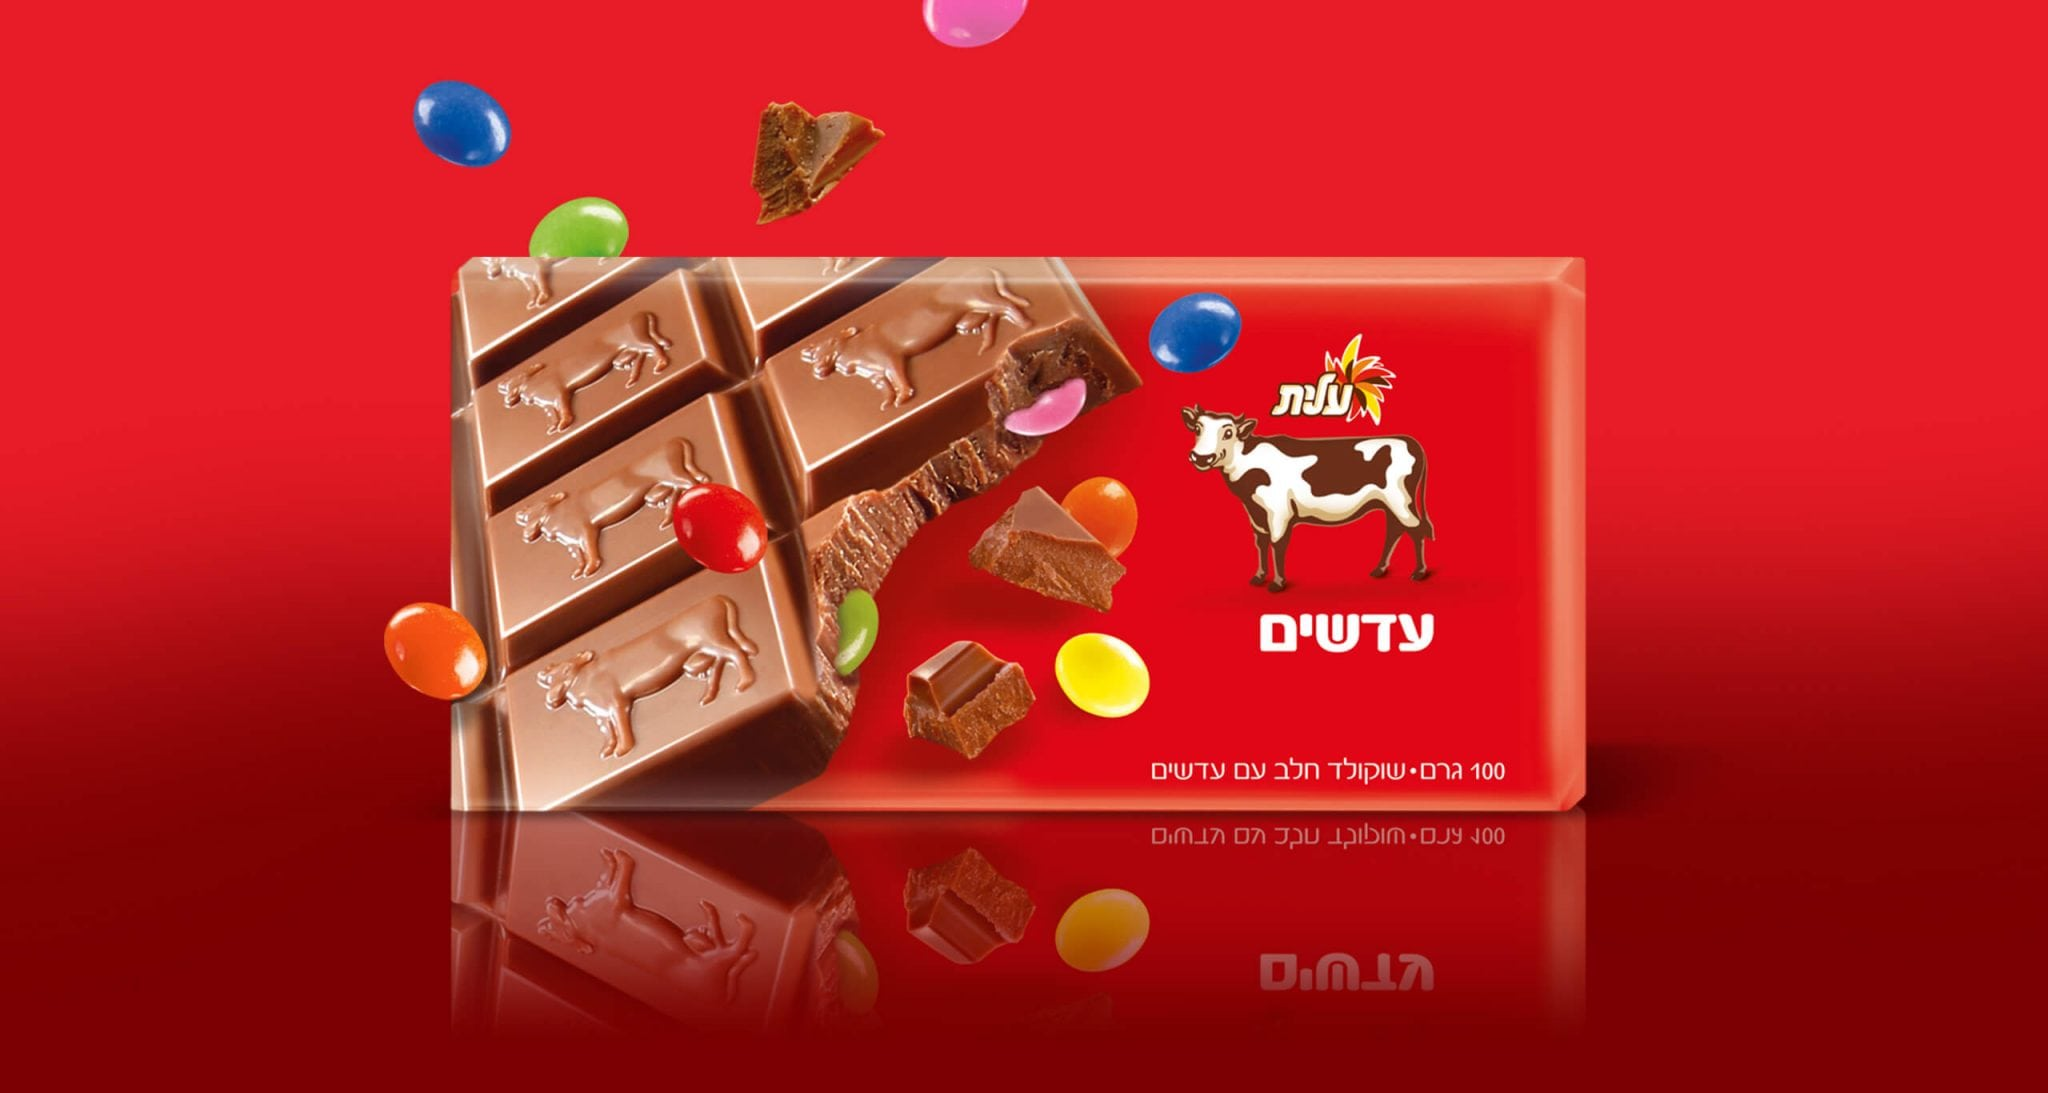 ELITE_CHOCOLATE_GalleryA07_2560x1366